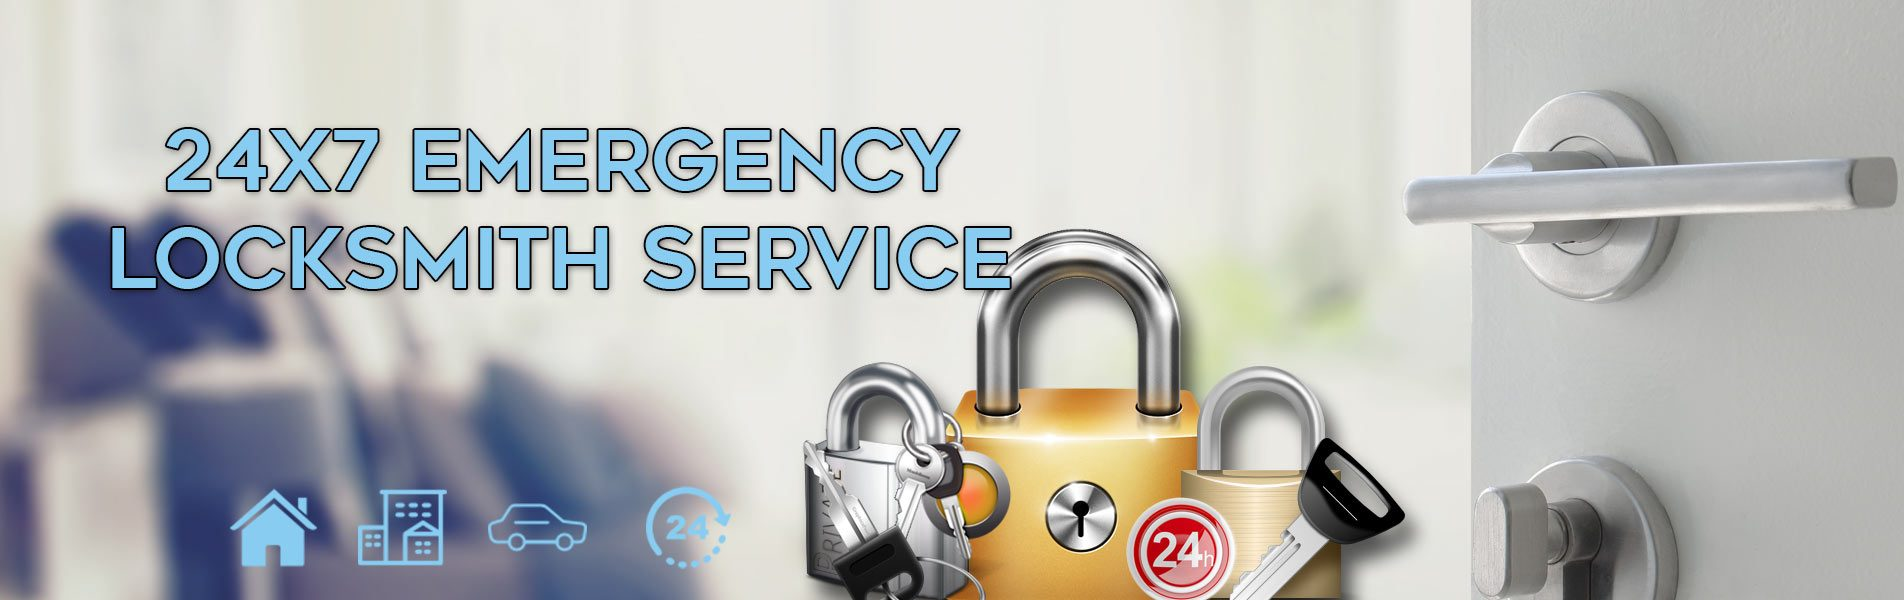 City Locksmith Services Miami, FL 305-894-5980